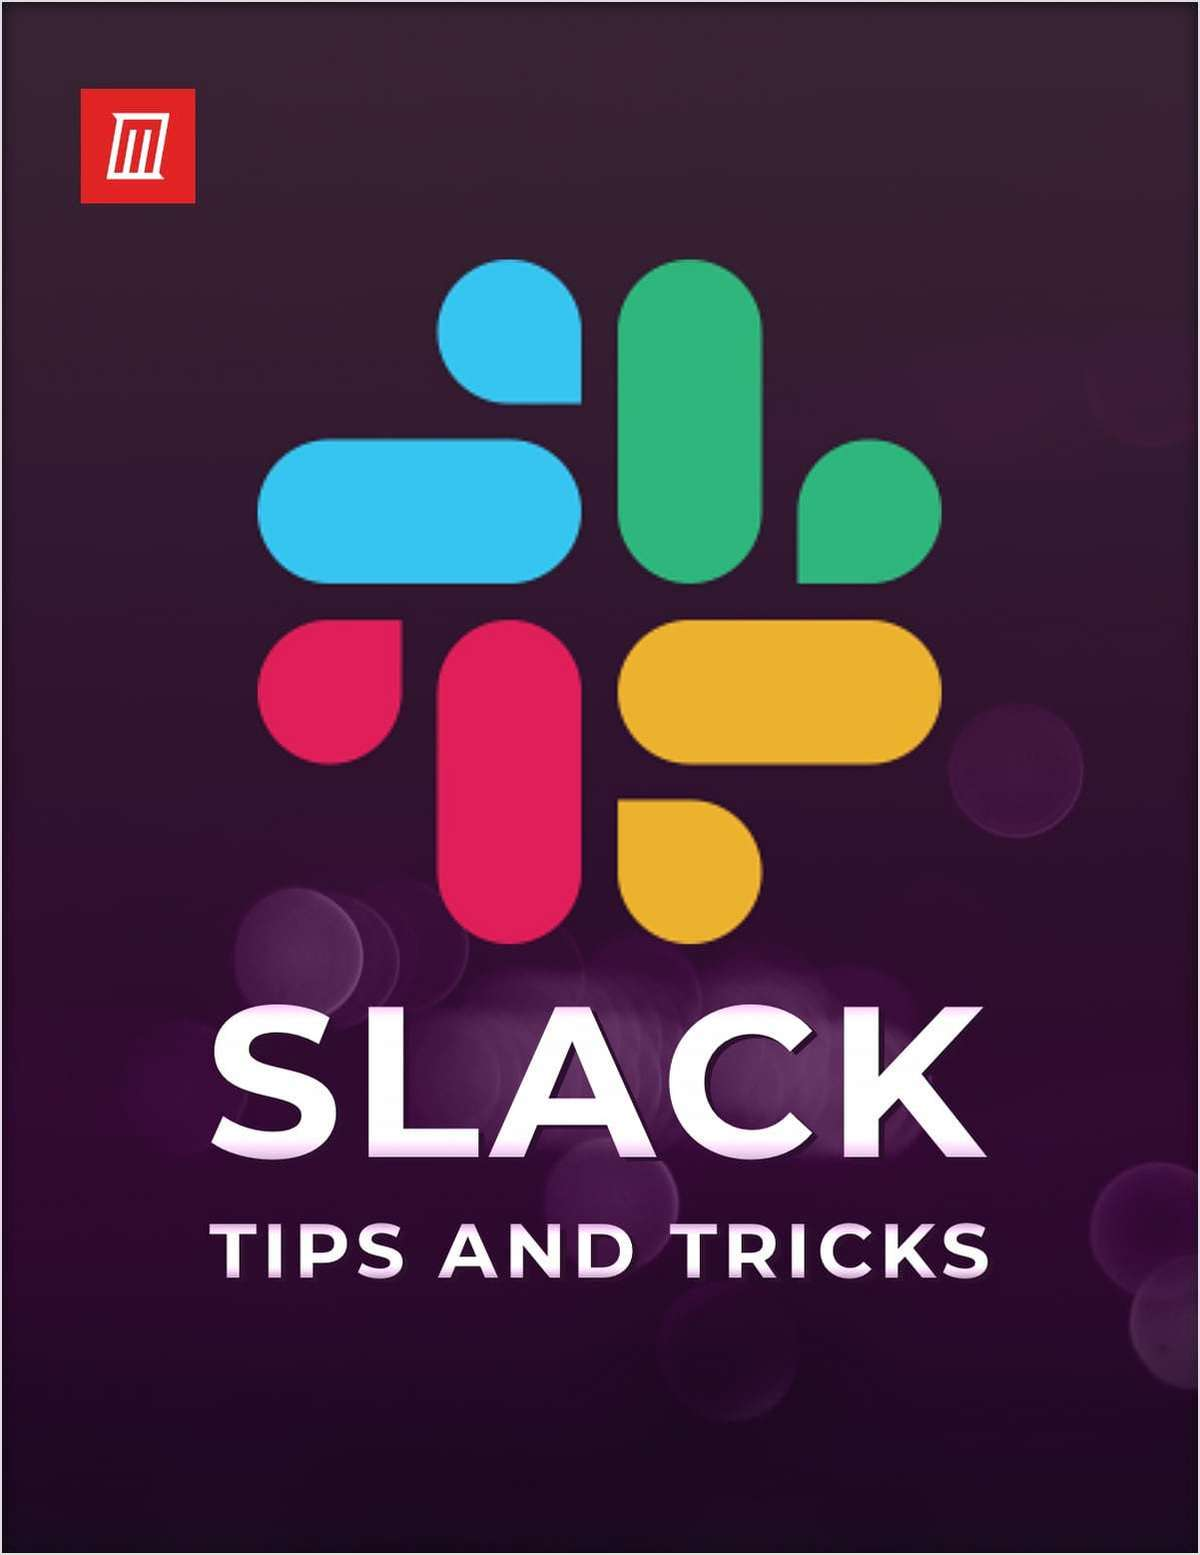 Useful Tips and Tricks for Navigating Slack